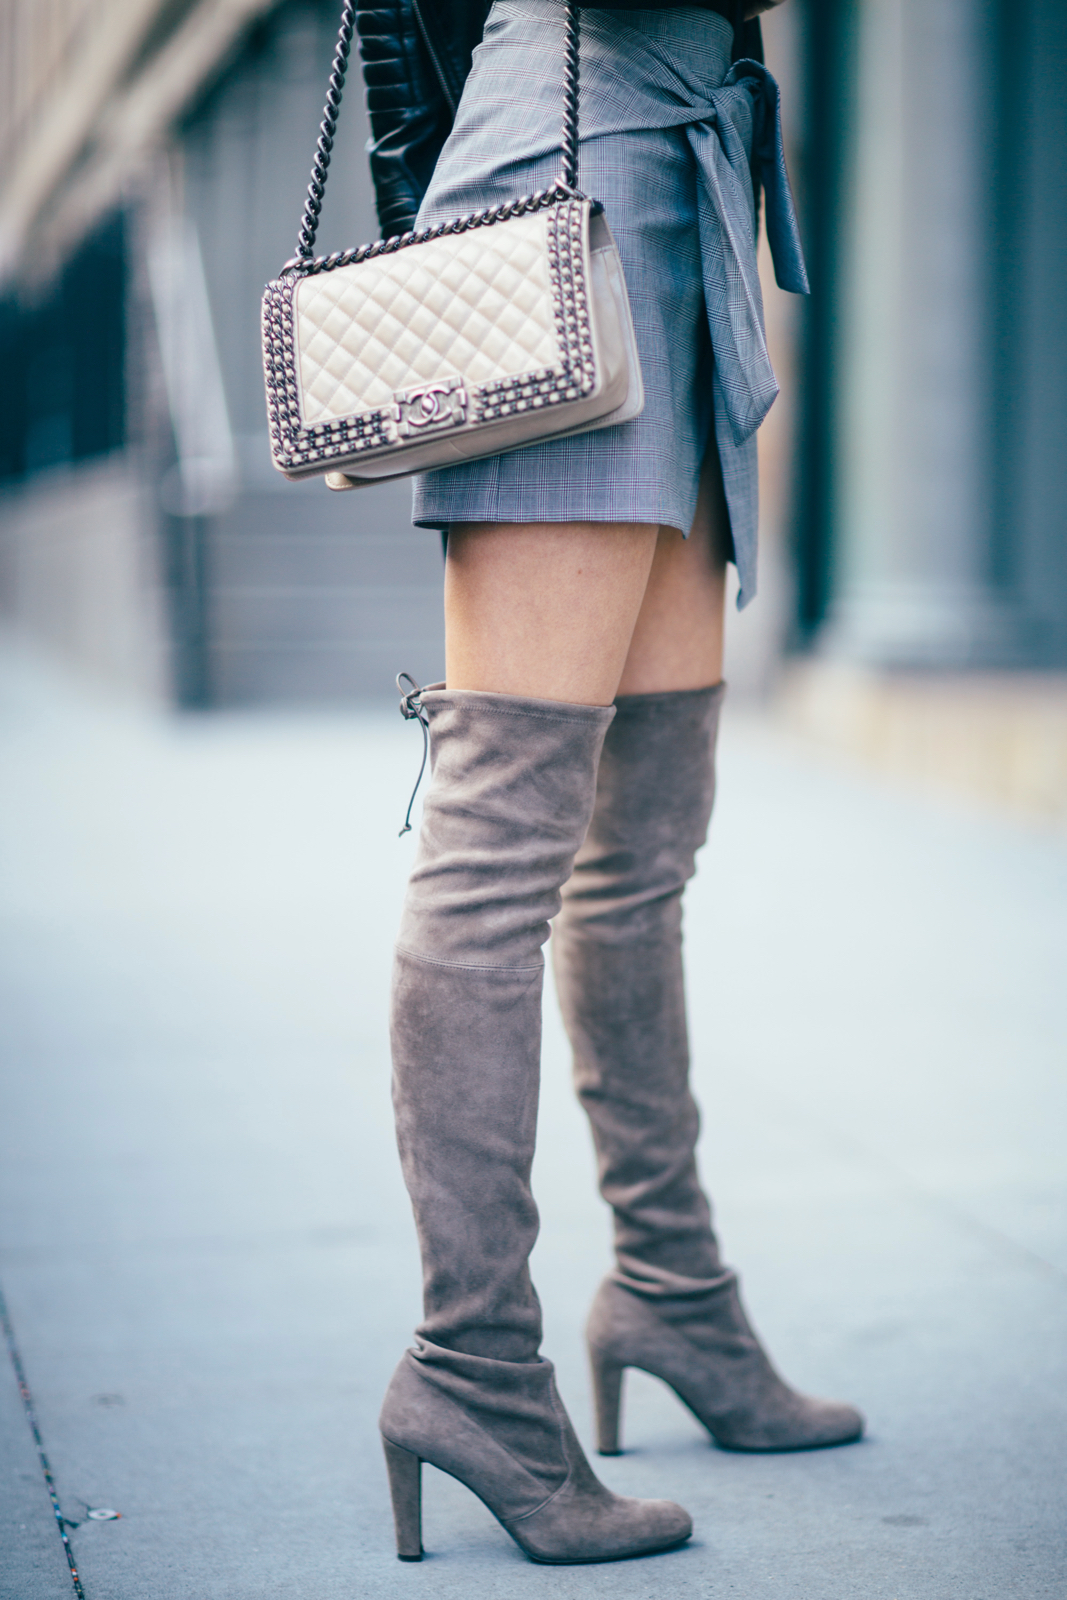 Stuart Weitzman over the knee boots, Chanel boy bag, Zara skirt, Moto skirt, Grey layers